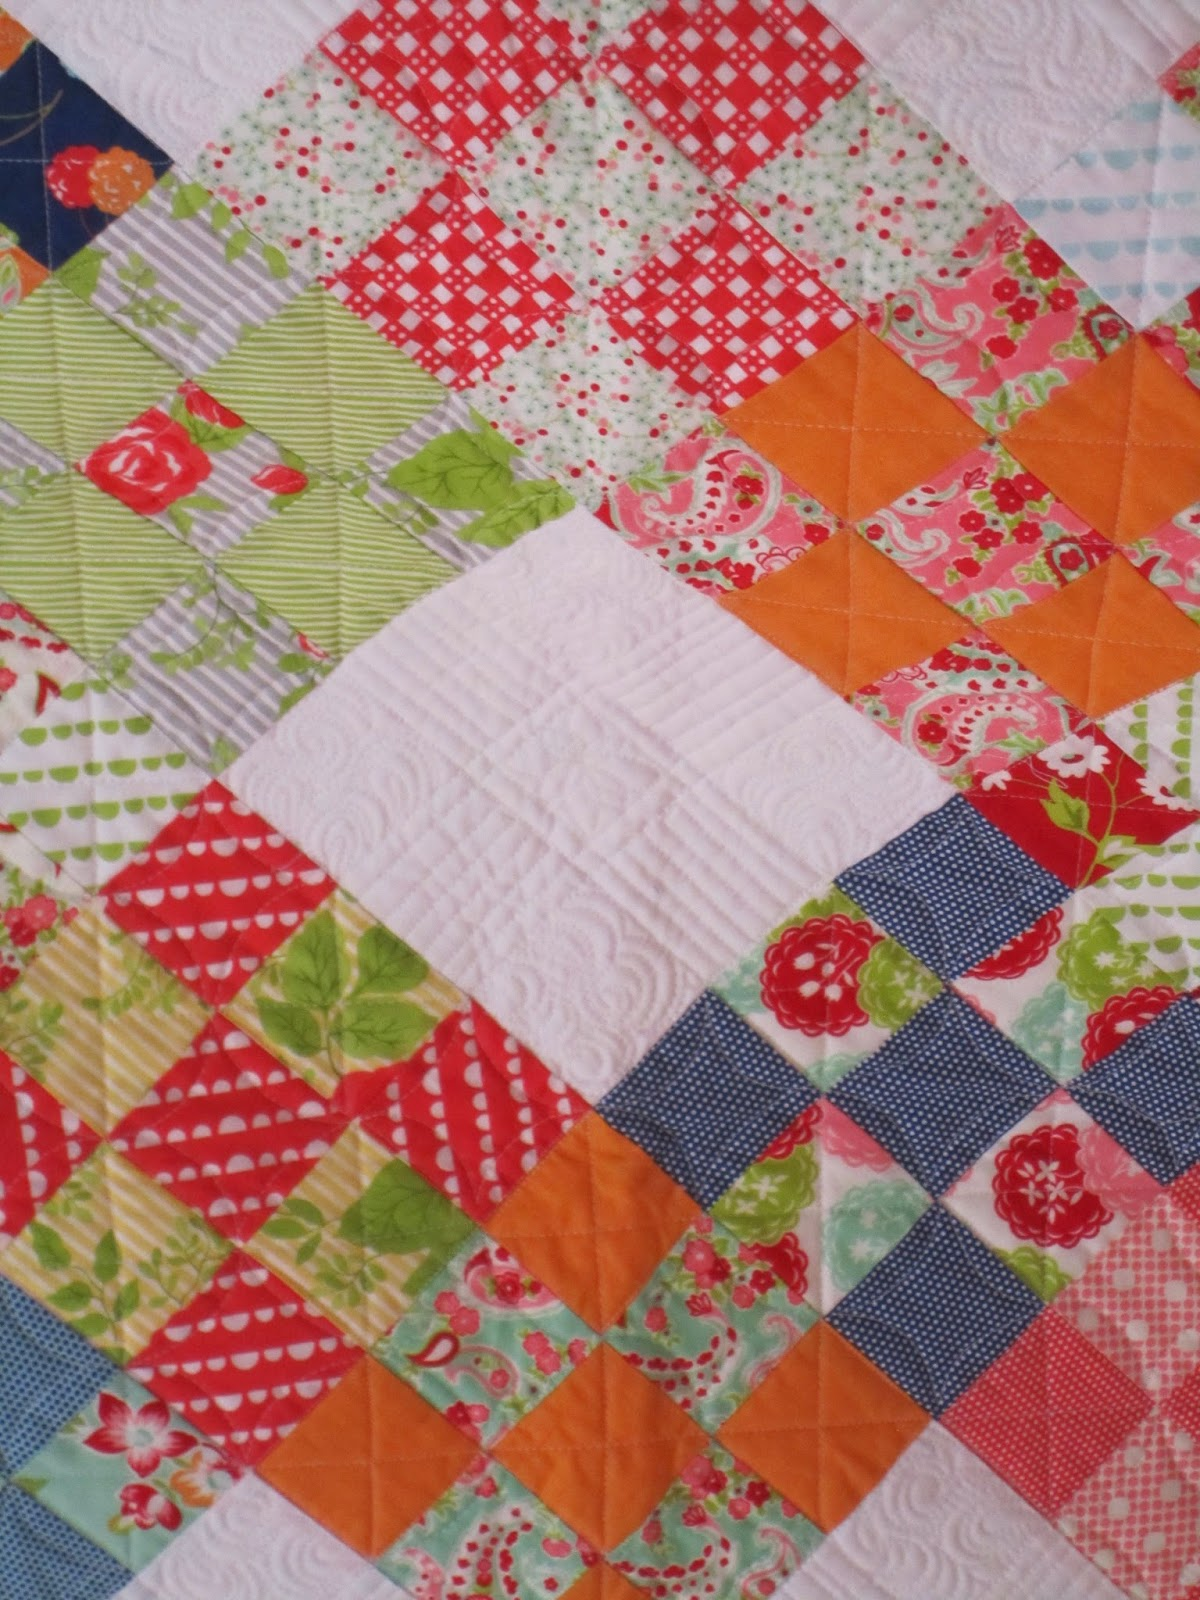 camille roskelley's machine quilting